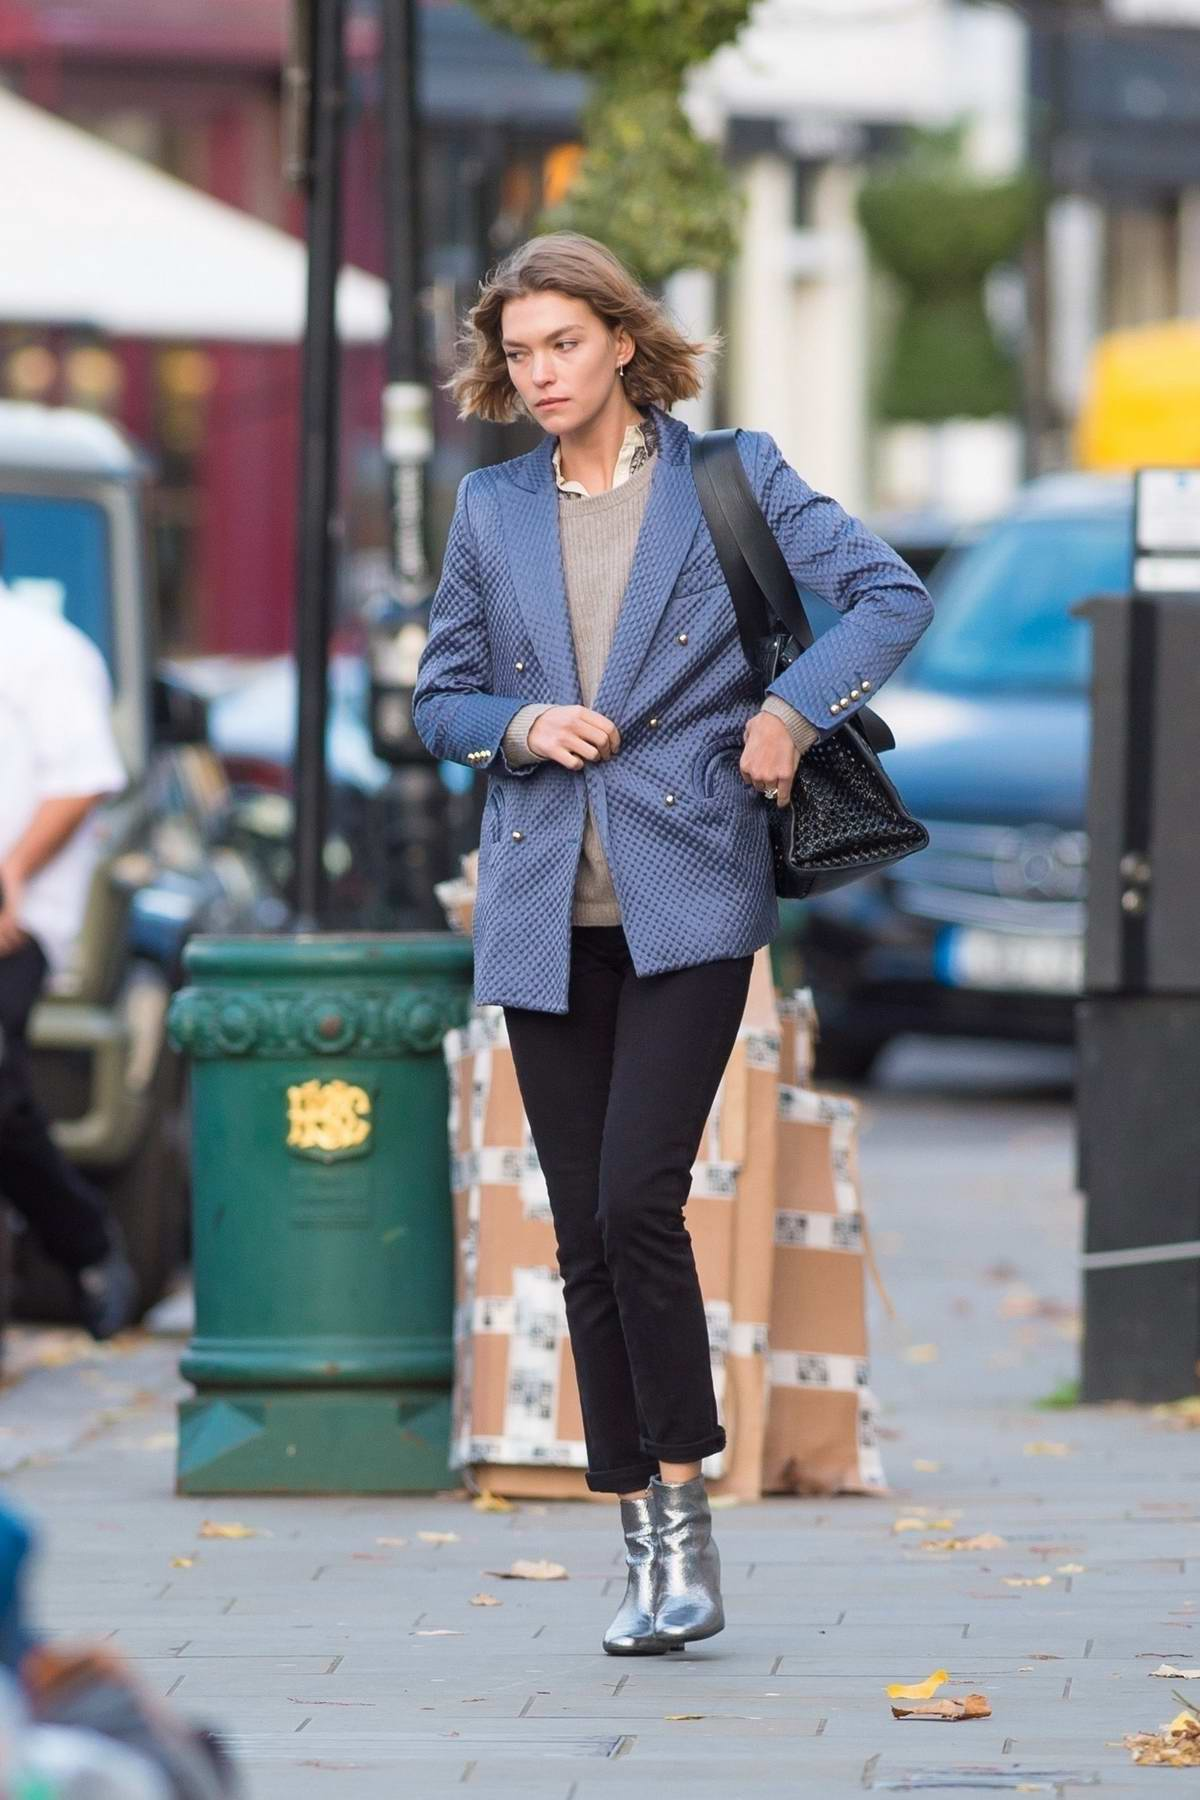 Arizona Muse shows off a casual look on her way to lunch in Notting Hill, London